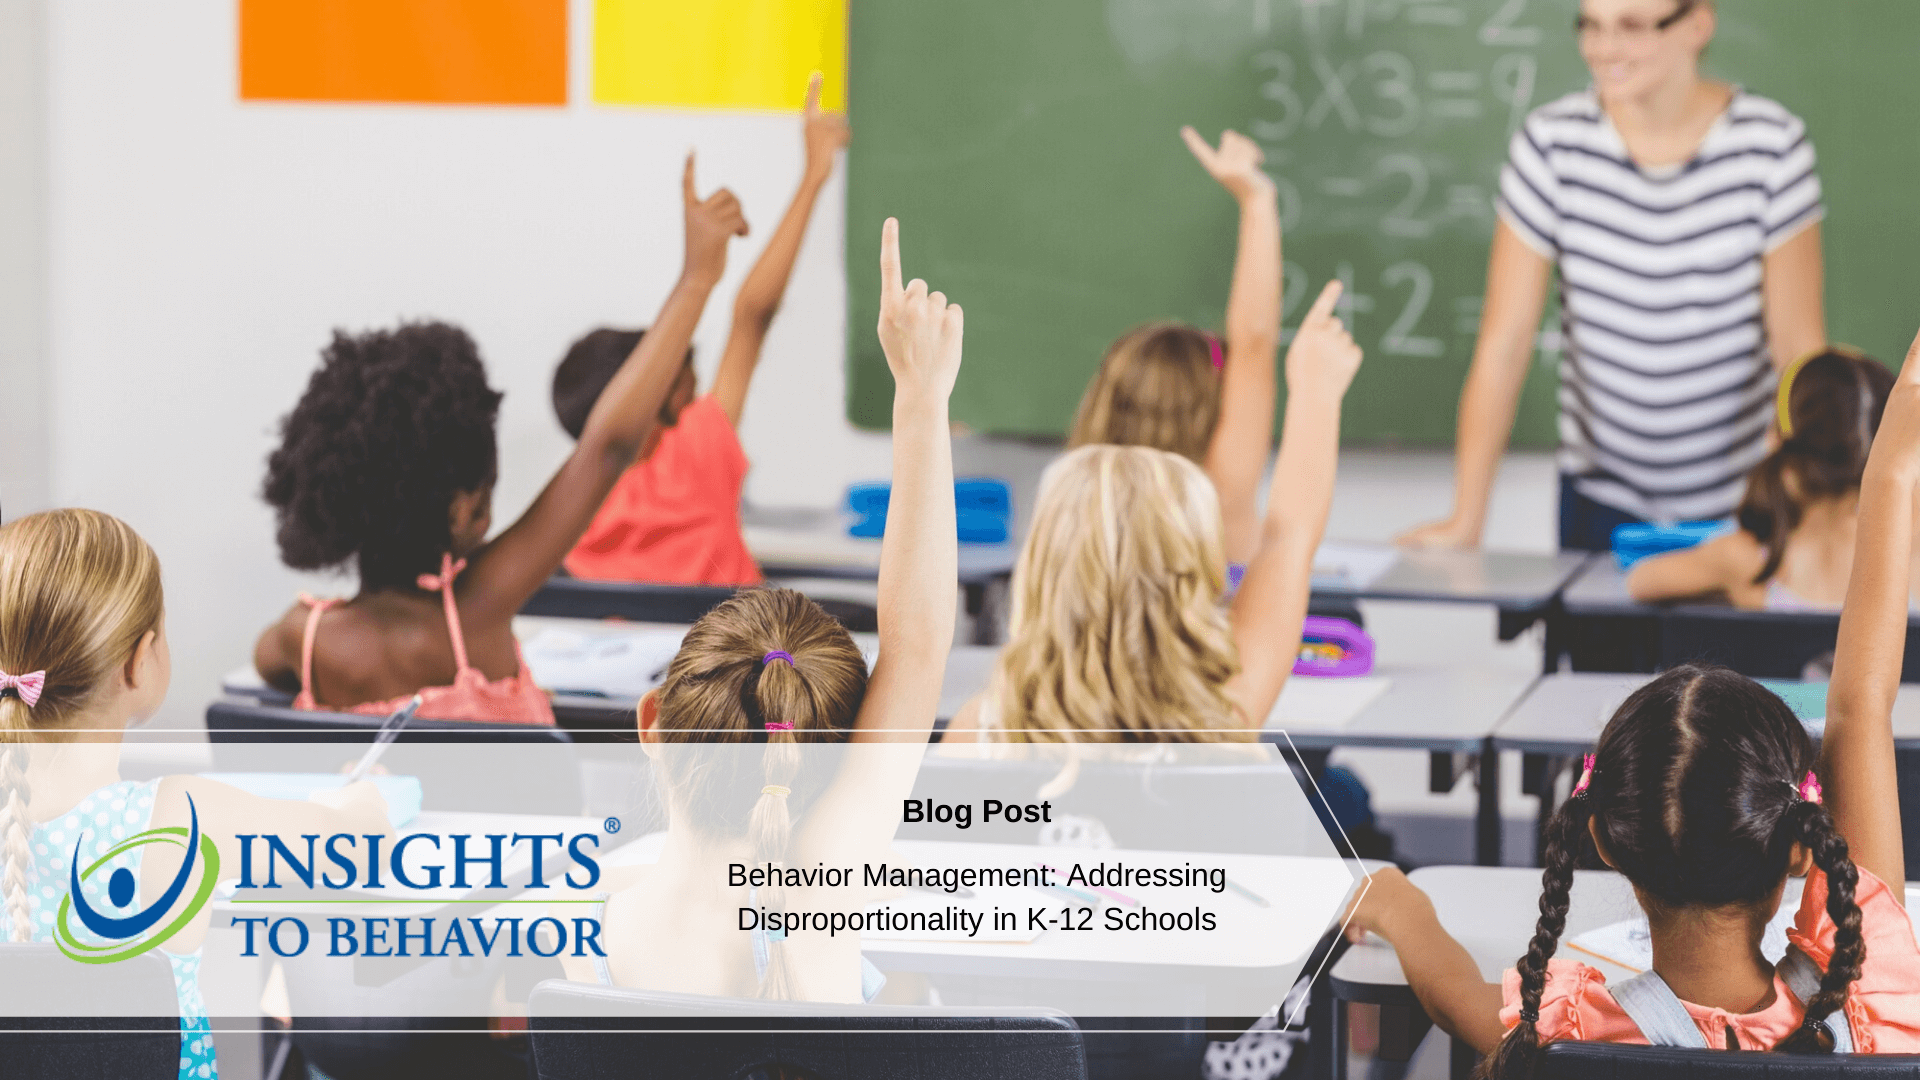 Behavior Management: Addressing Disproportionality in K-12 Schools